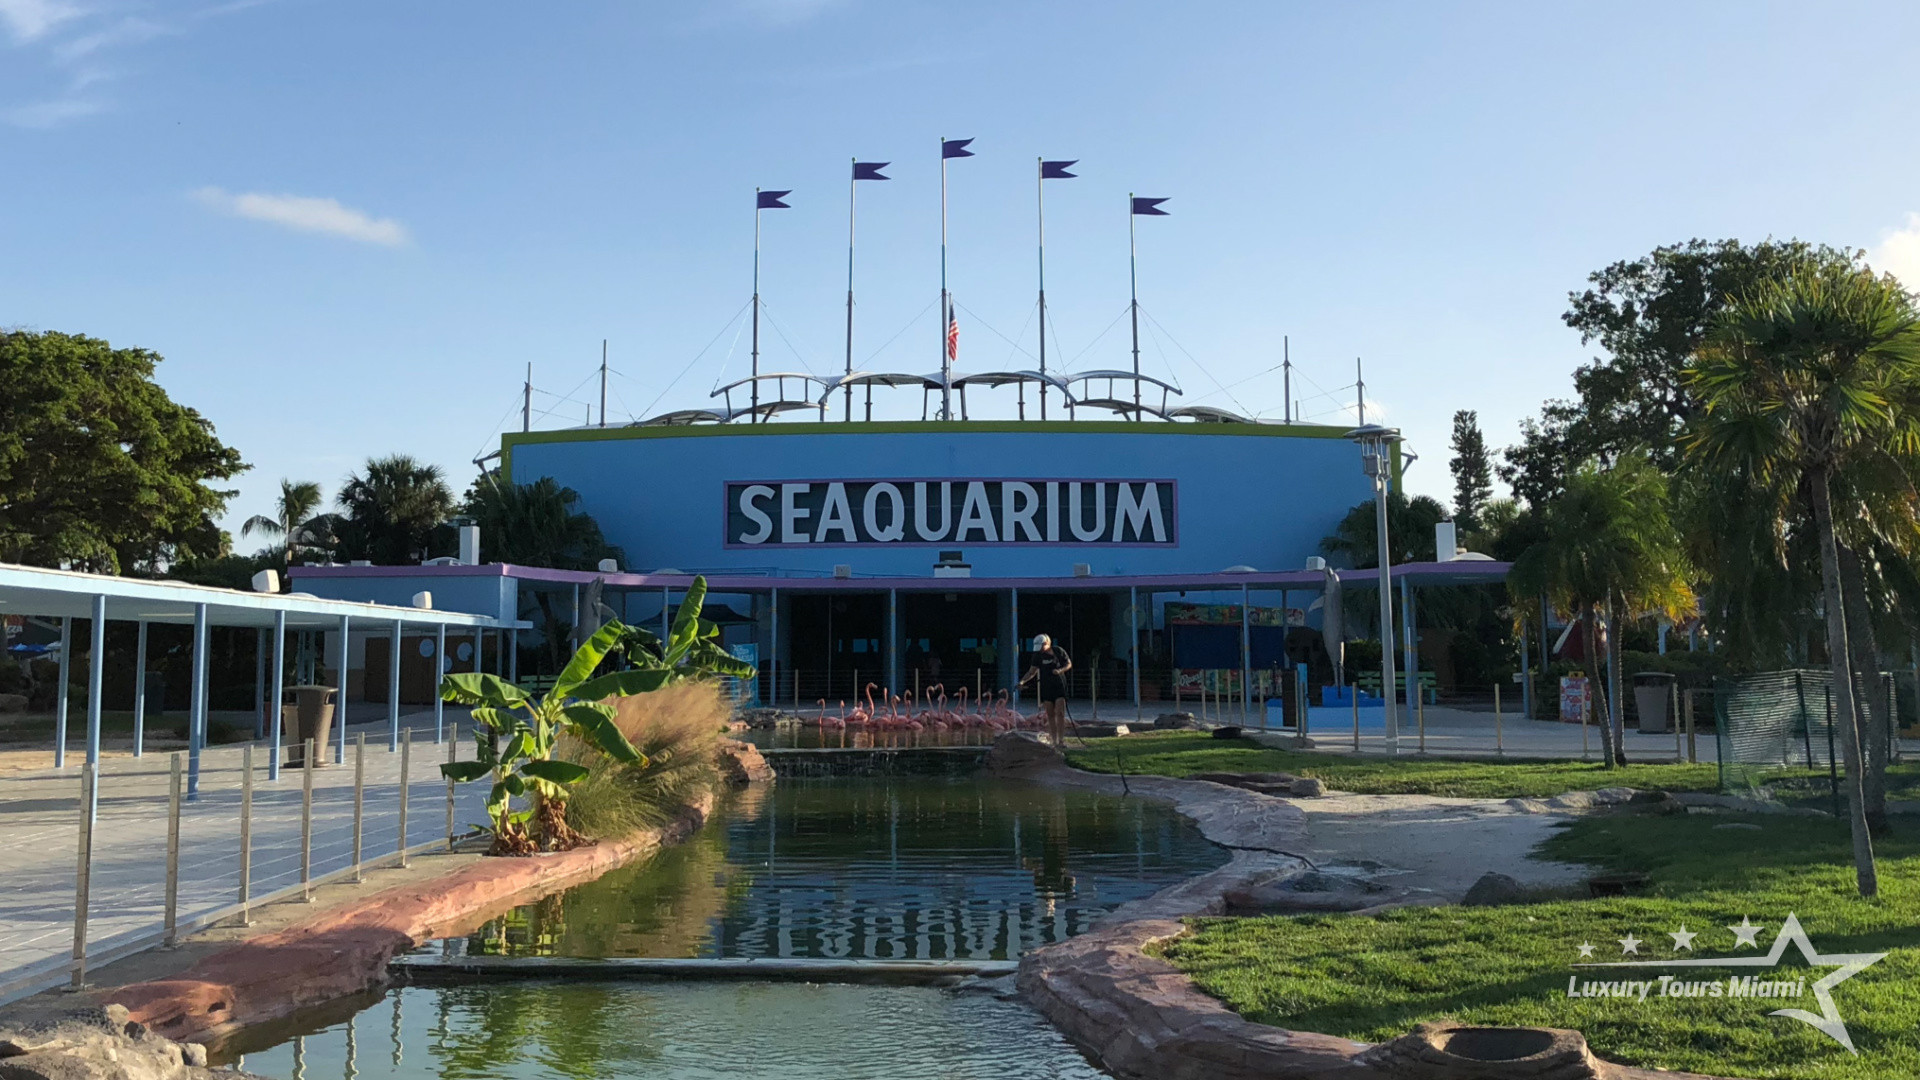 Welcome to the Seaquarium